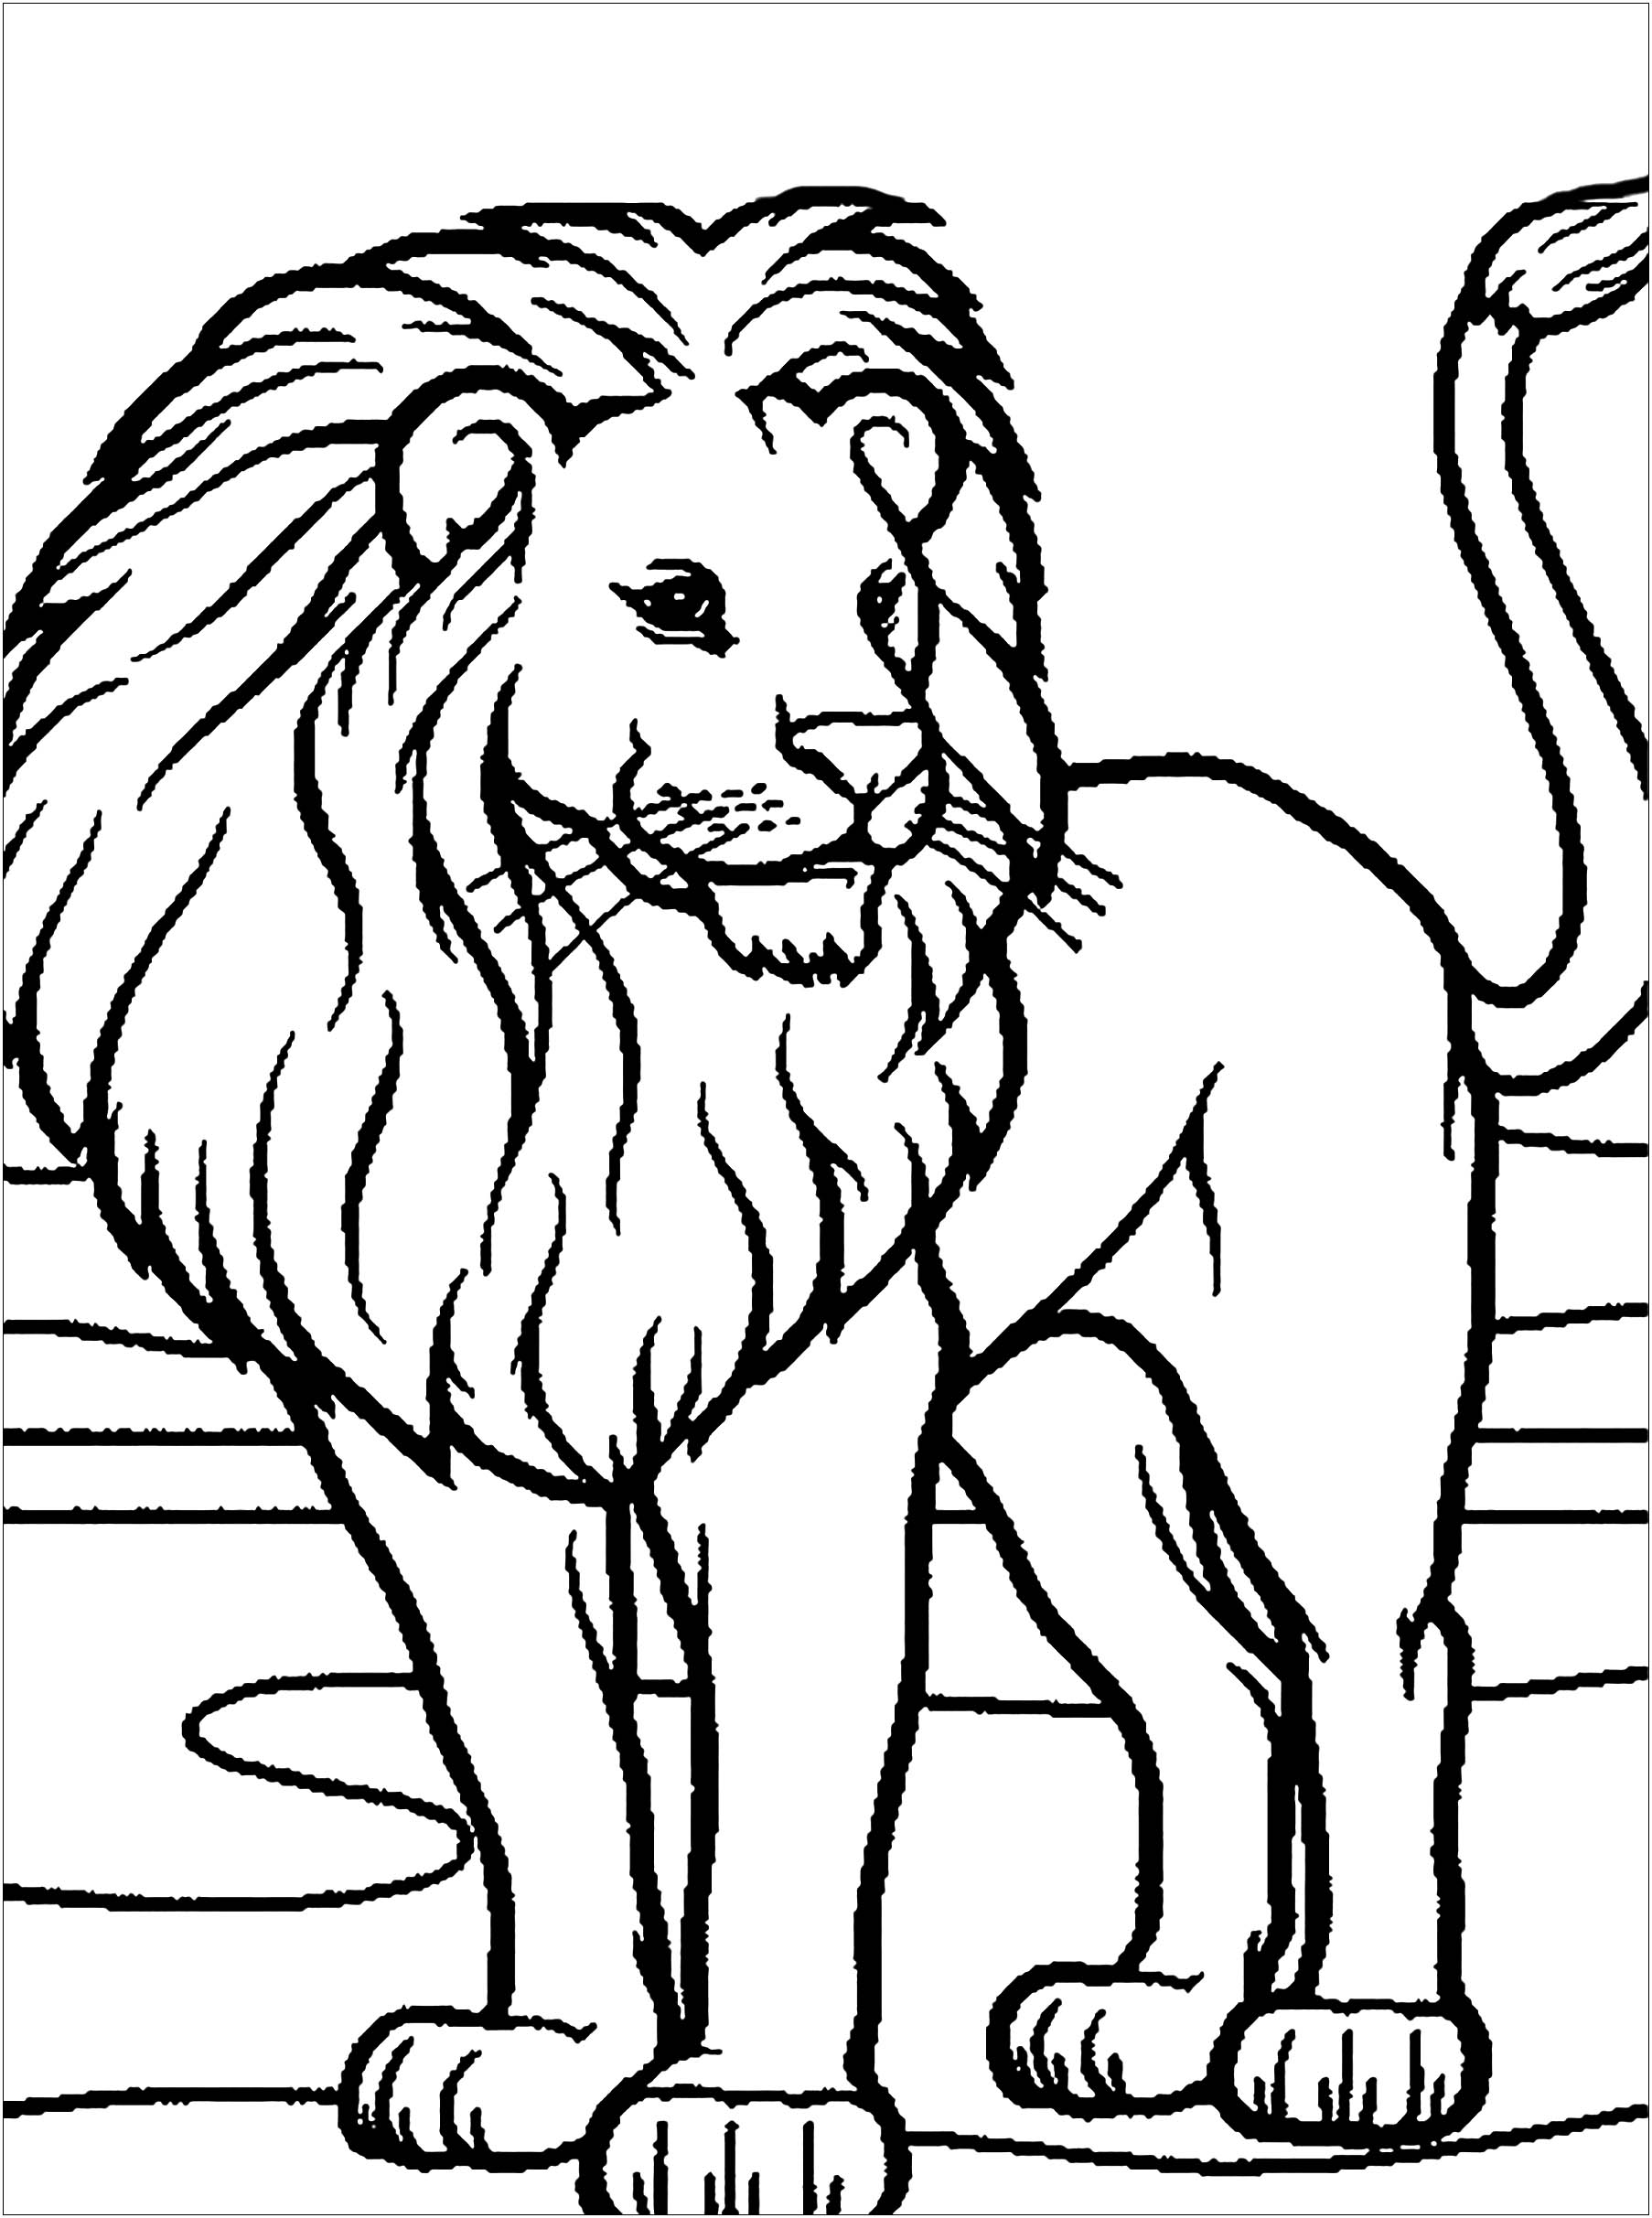 coloring pages for kids lion lion to download lion kids coloring pages pages kids lion for coloring